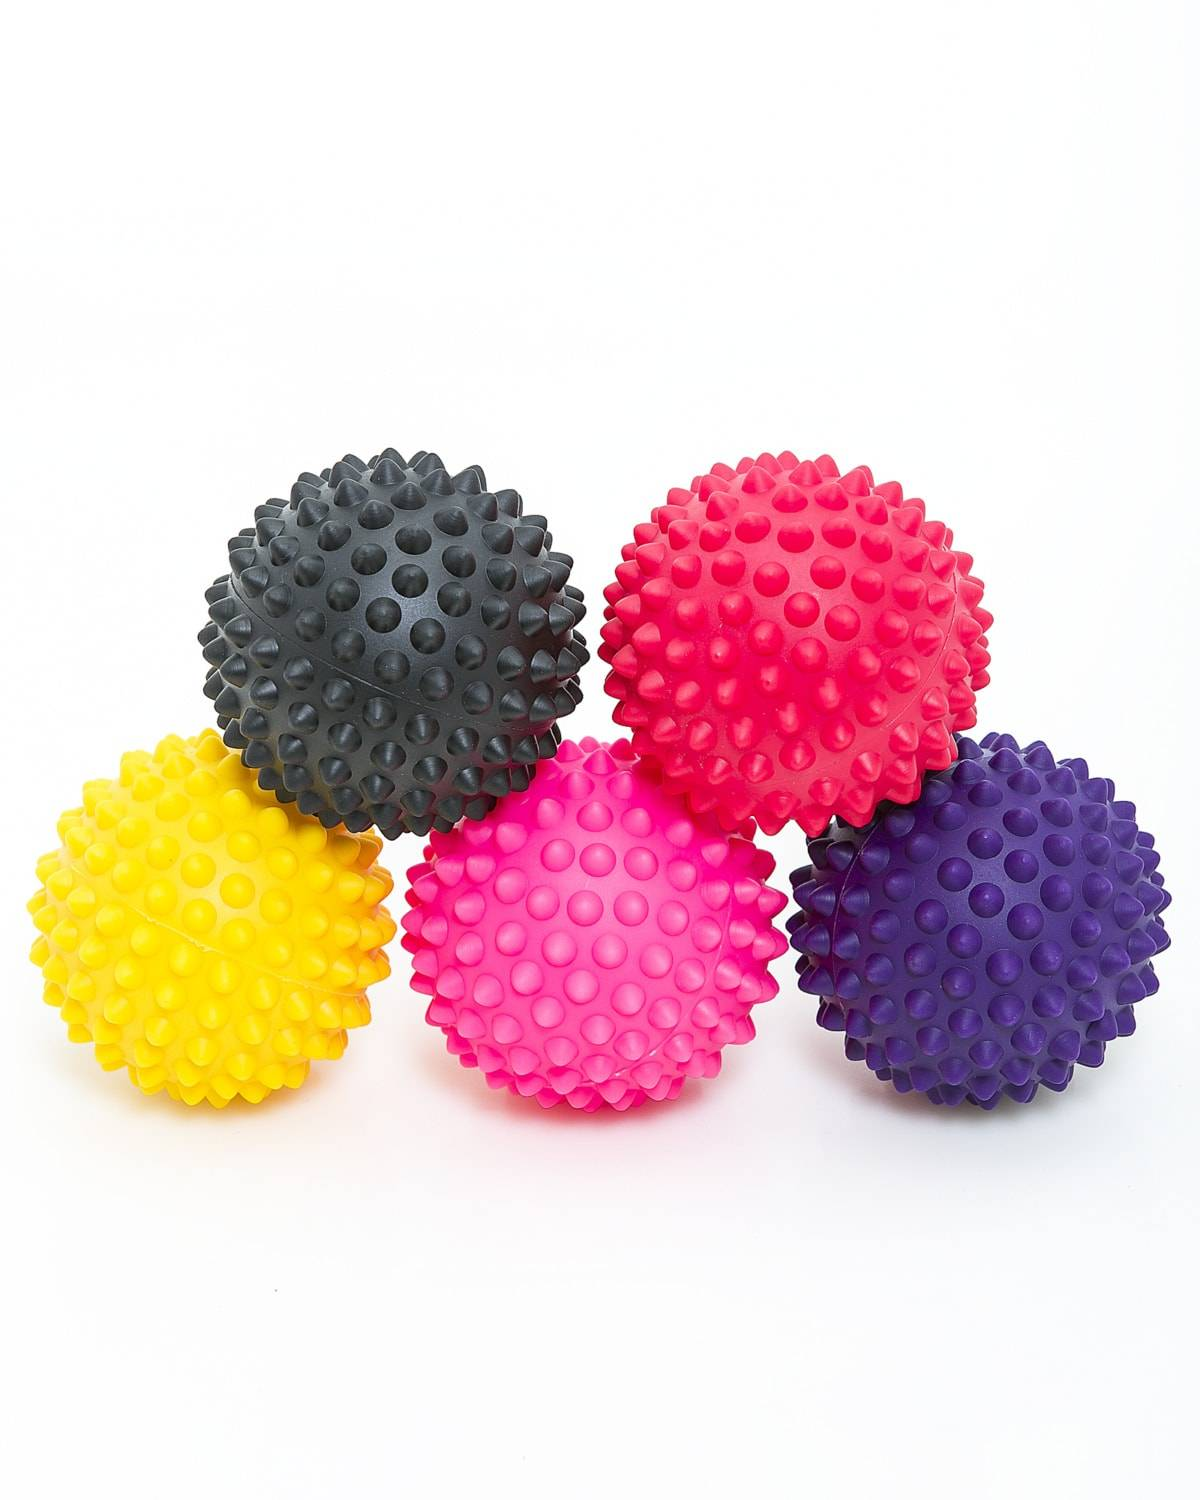 LEVITY Premium Fitness - Spiky Trigger Ball